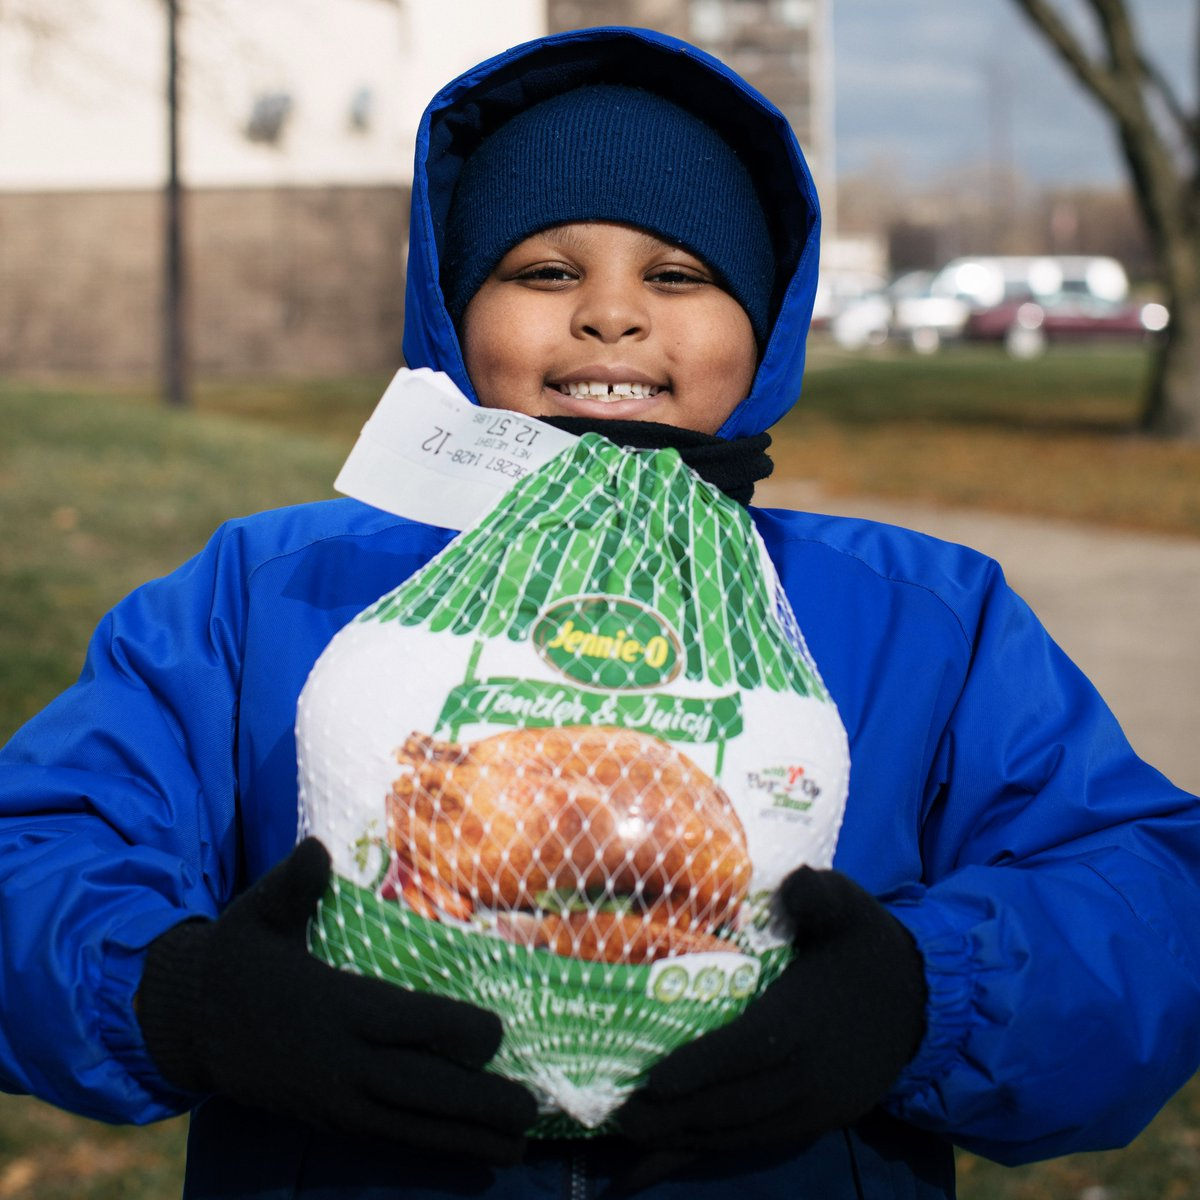 """""""Not having a turkey would have been sad. I'm excited that we have one now. It helps our family celebrate what we have."""" -Jaylen, 8  Thank you to everyone who helped this tough holiday season a little brighter. 🧡"""